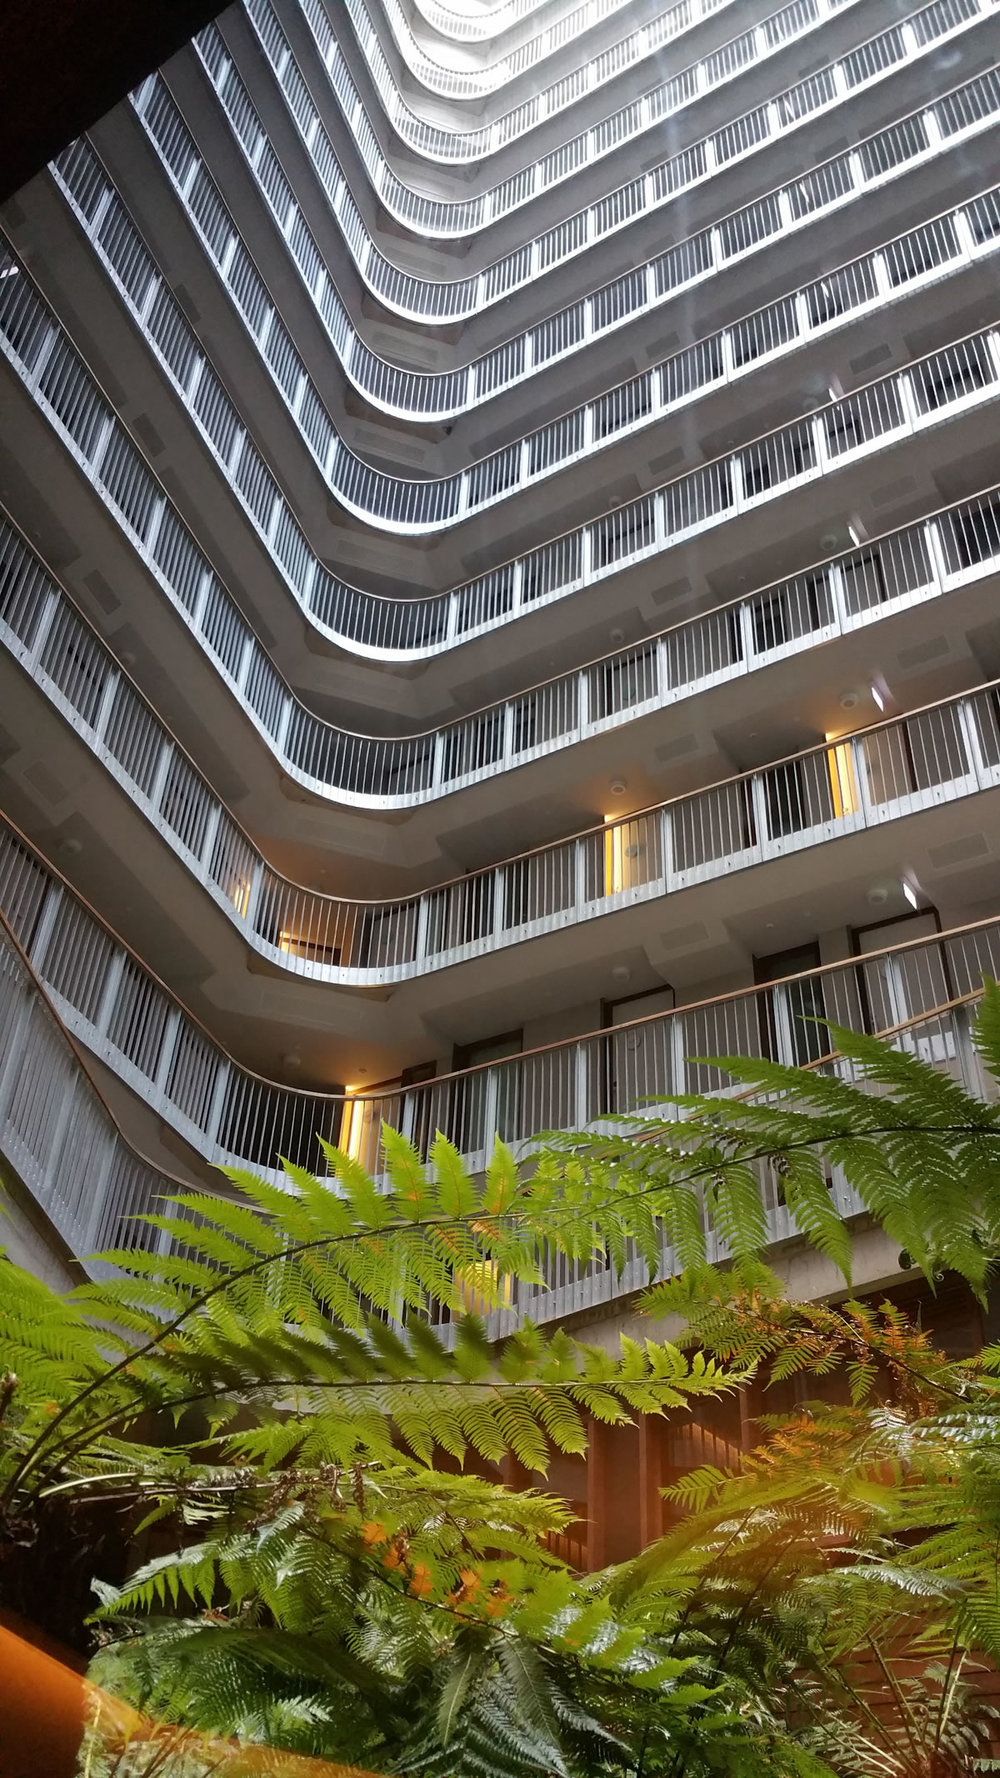 The windows of the Hotel are openable to the tree fern filled atrium.